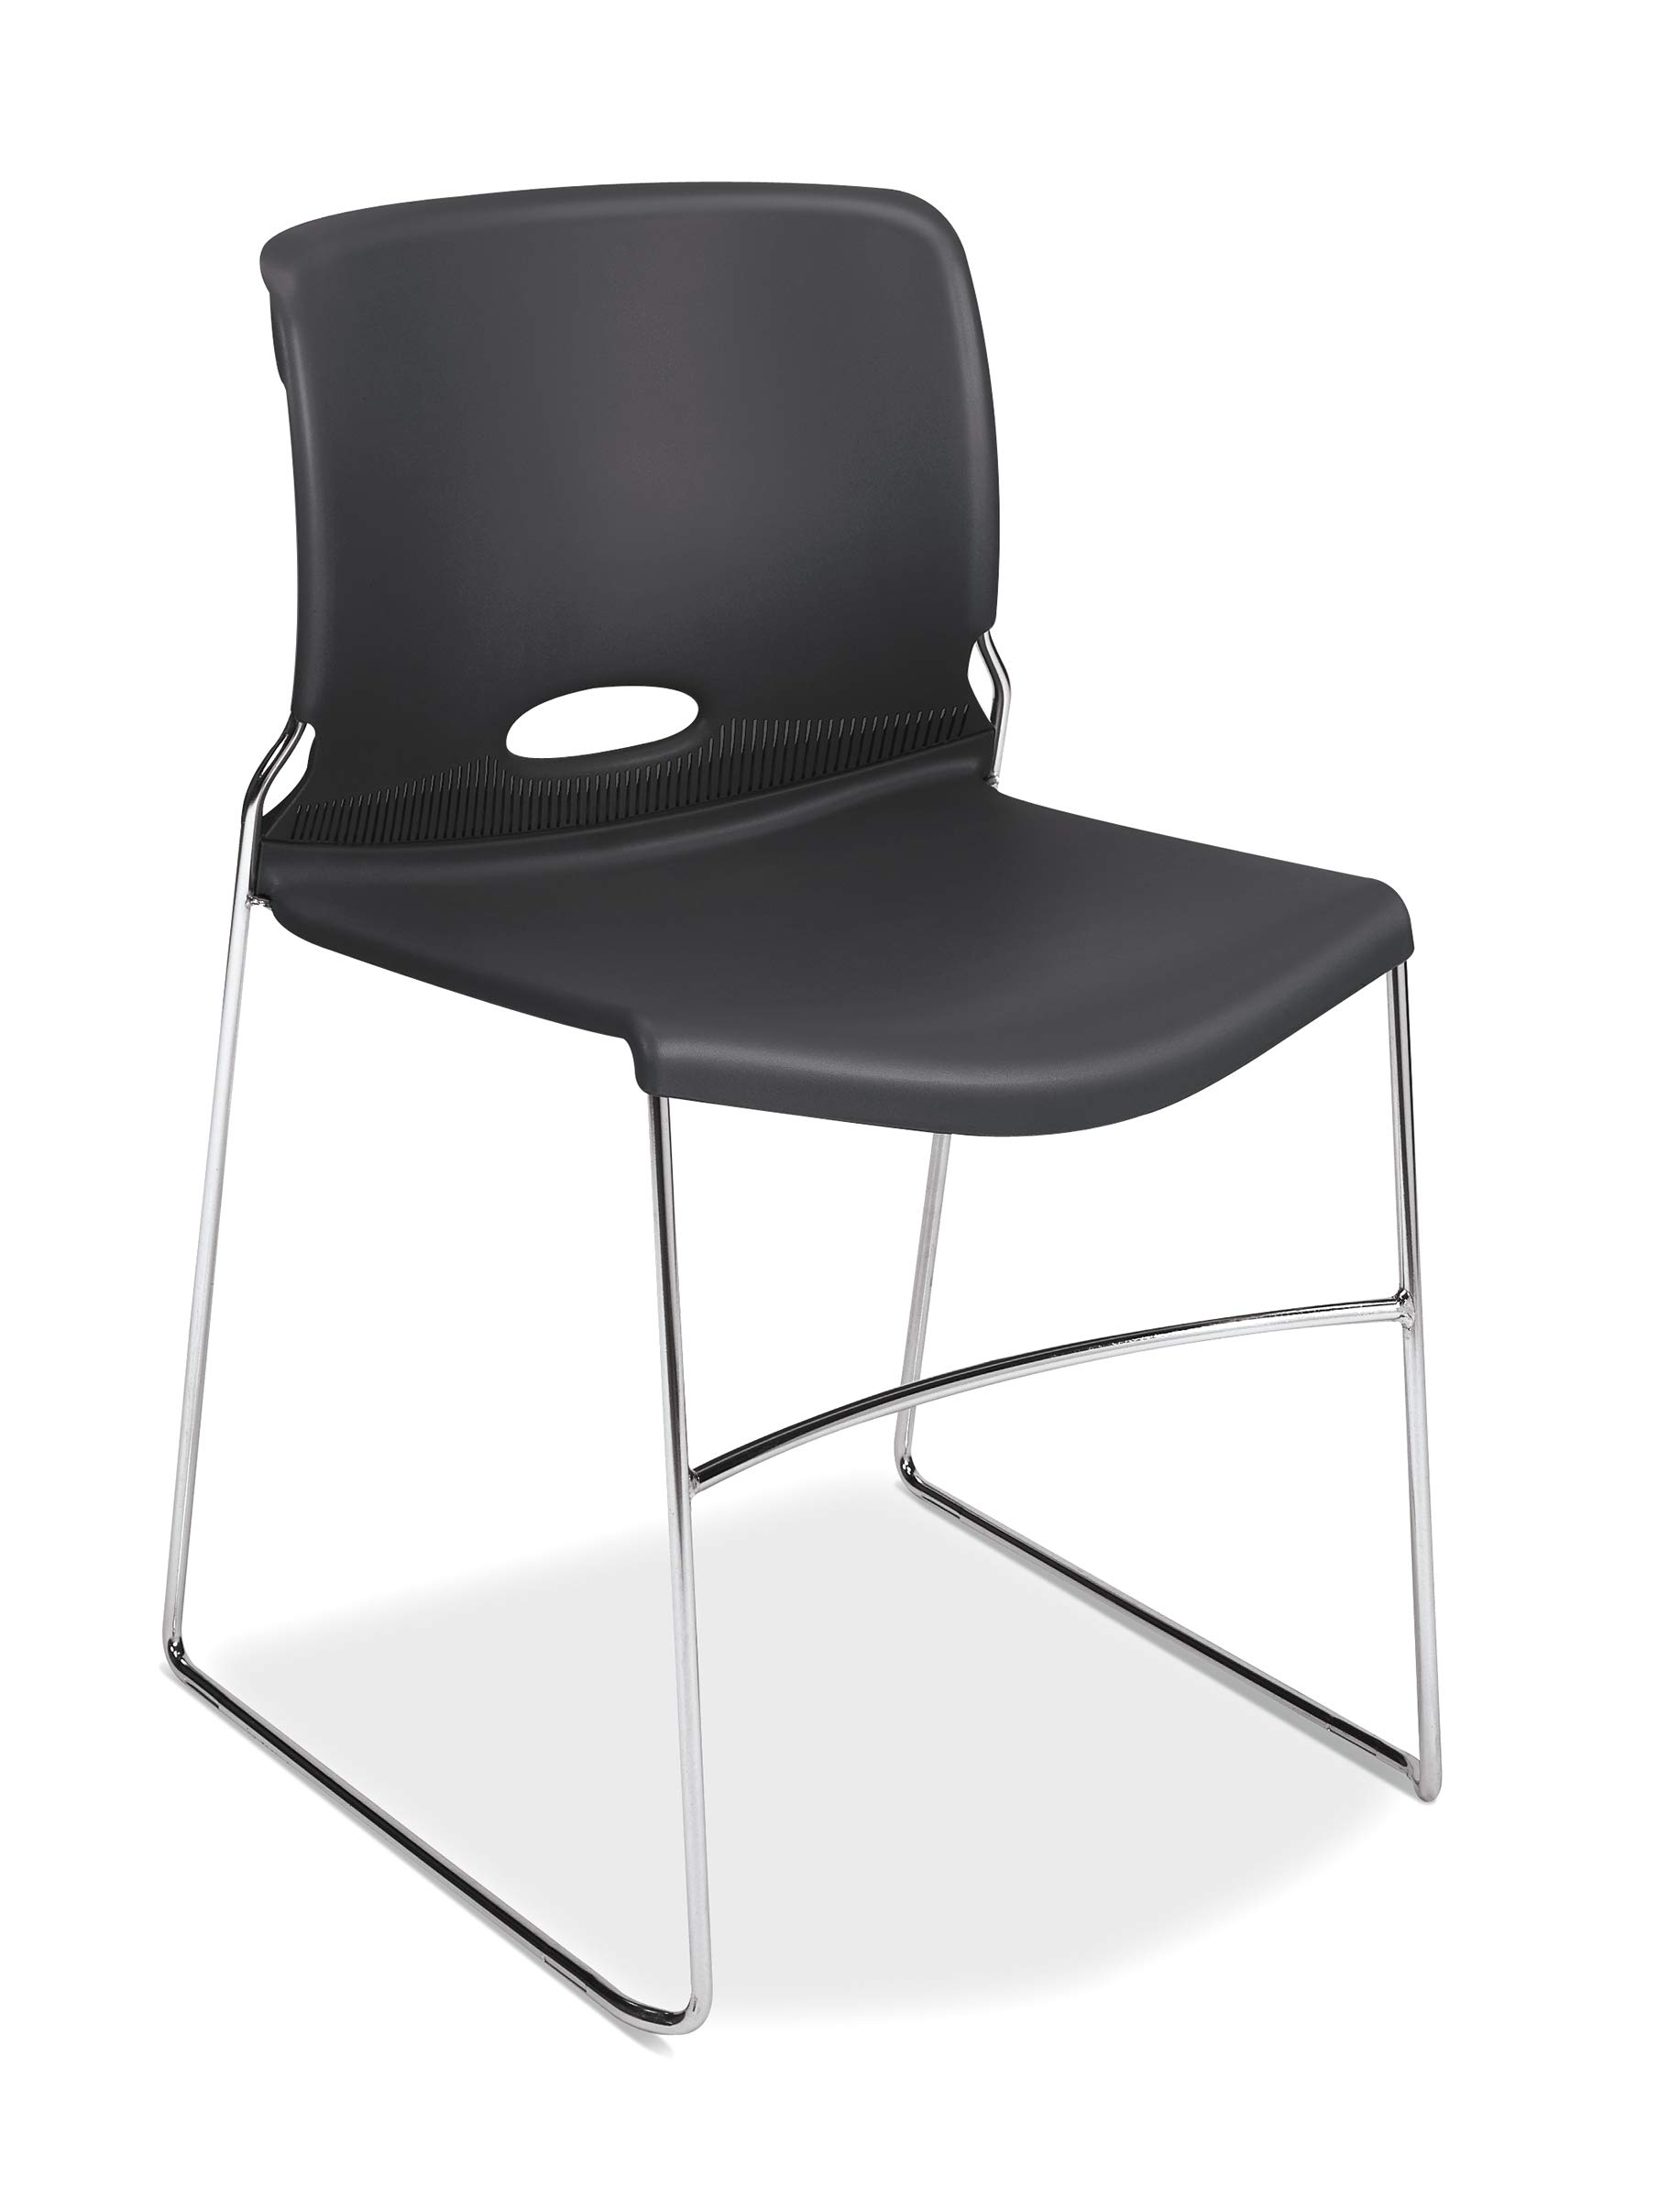 HON Olson Stacking Chair - Guest Chair for Office, Cafeteria, Break Rooms, Training or Multi-Purpose Rooms, Lava, 4 pack (H4041) by HON